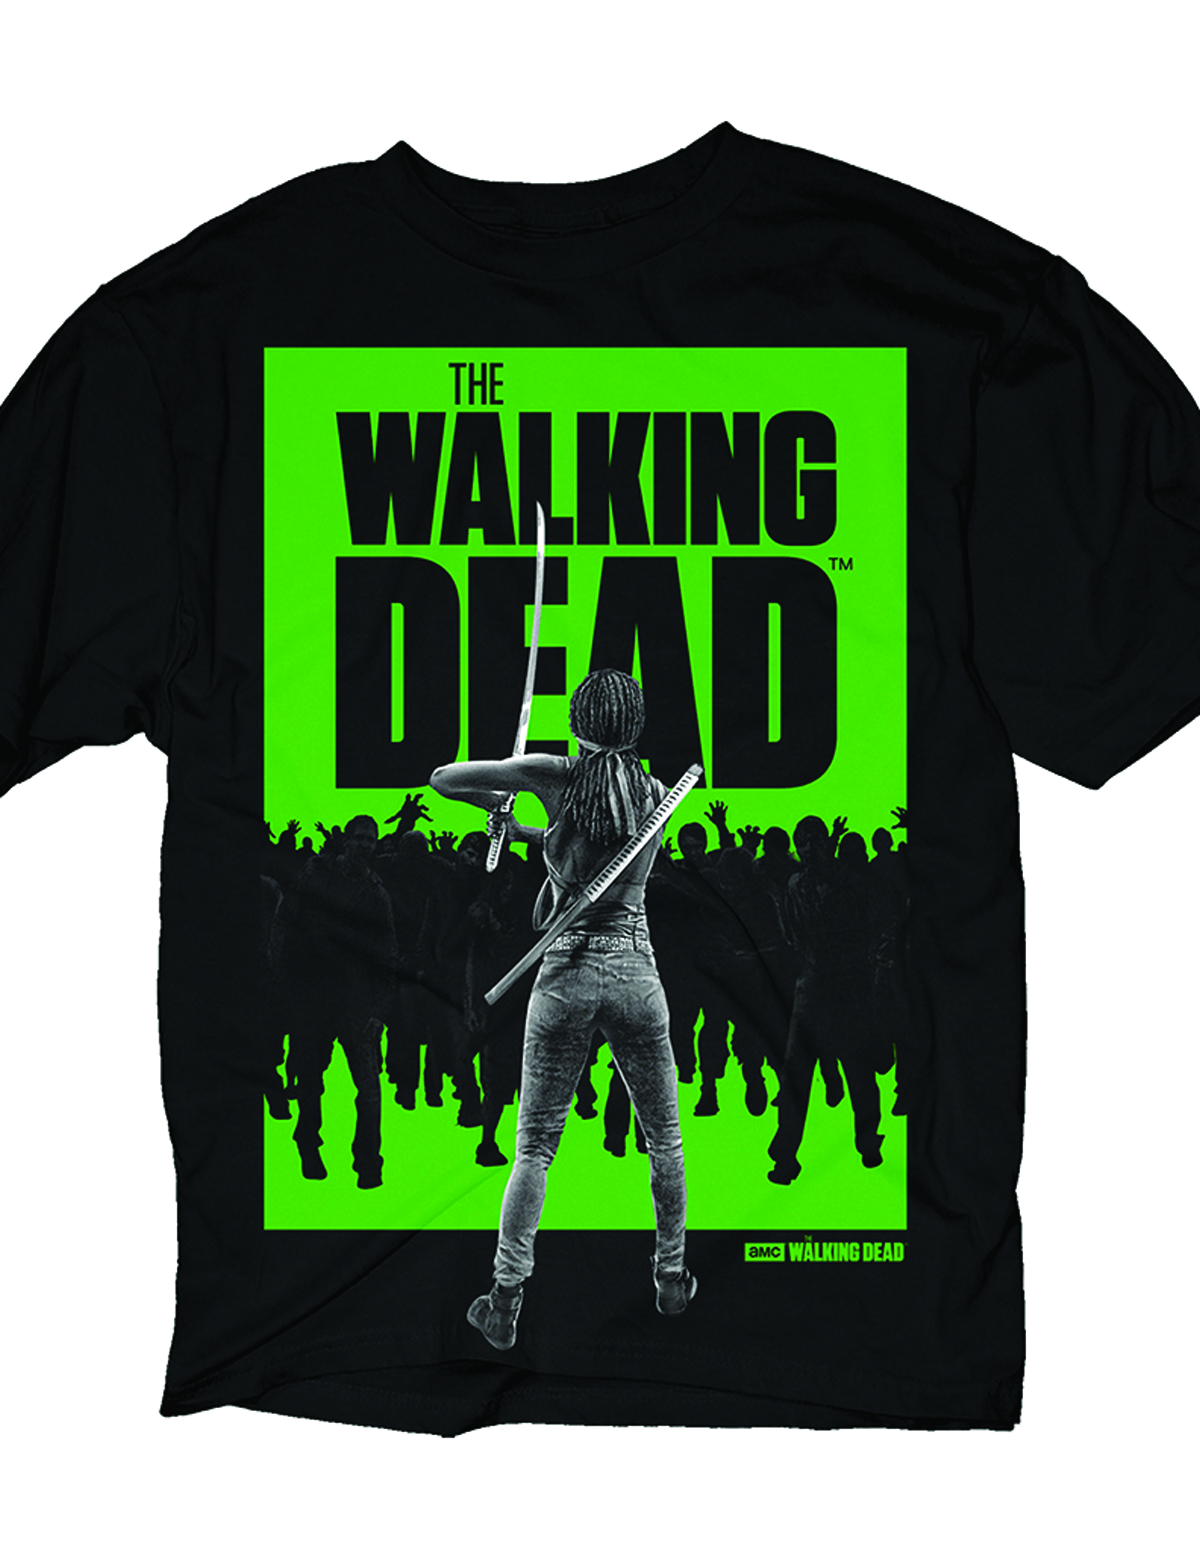 WALKING DEAD MICHONNE WALKER PX BLK T/S XXL